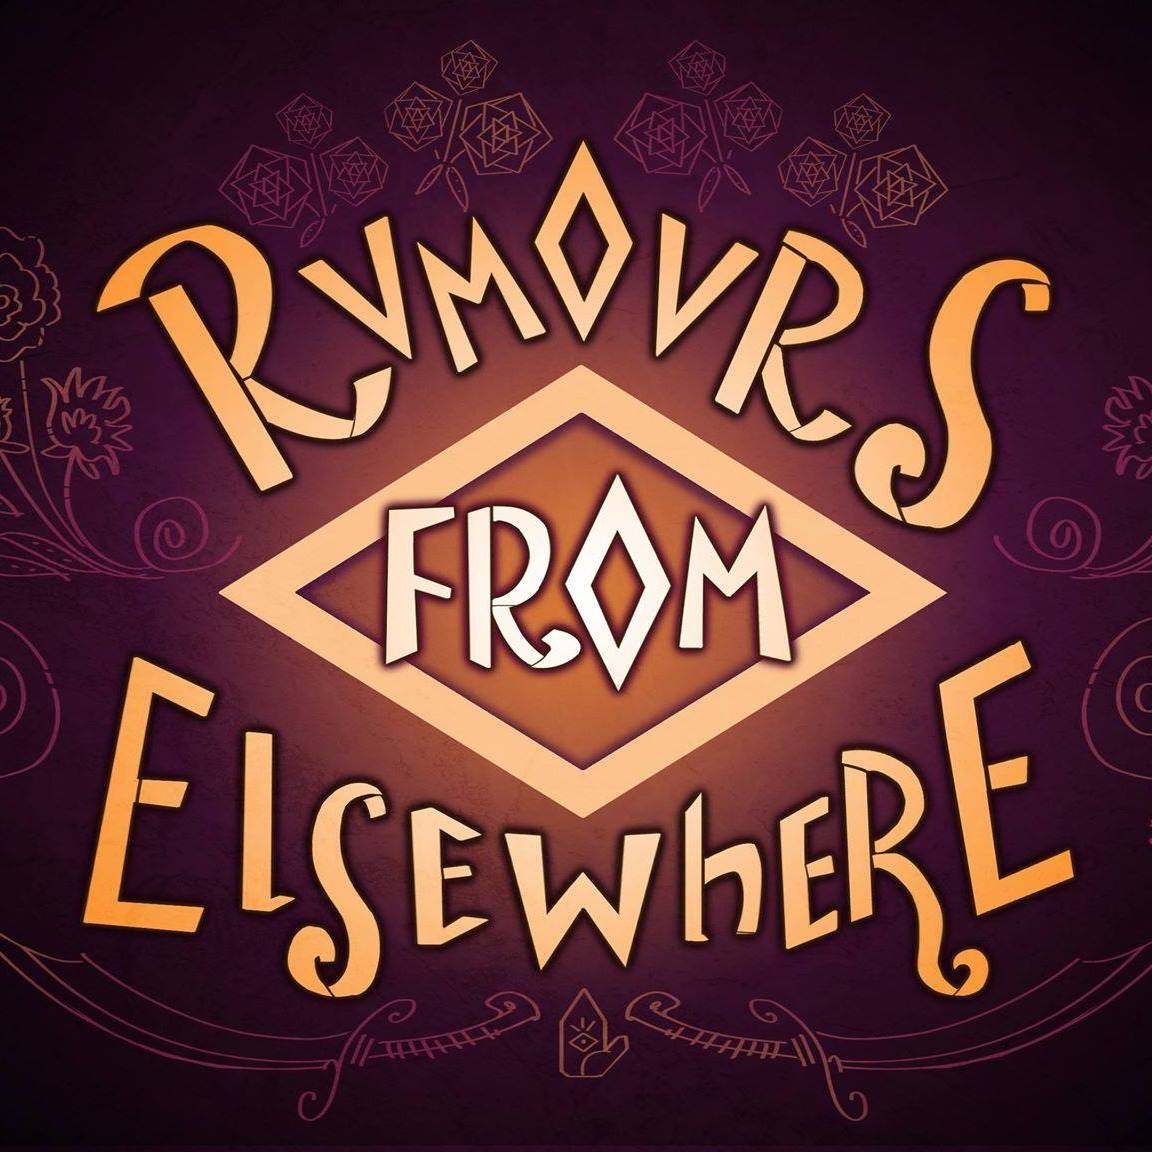 Rumours From Elsewhere Review